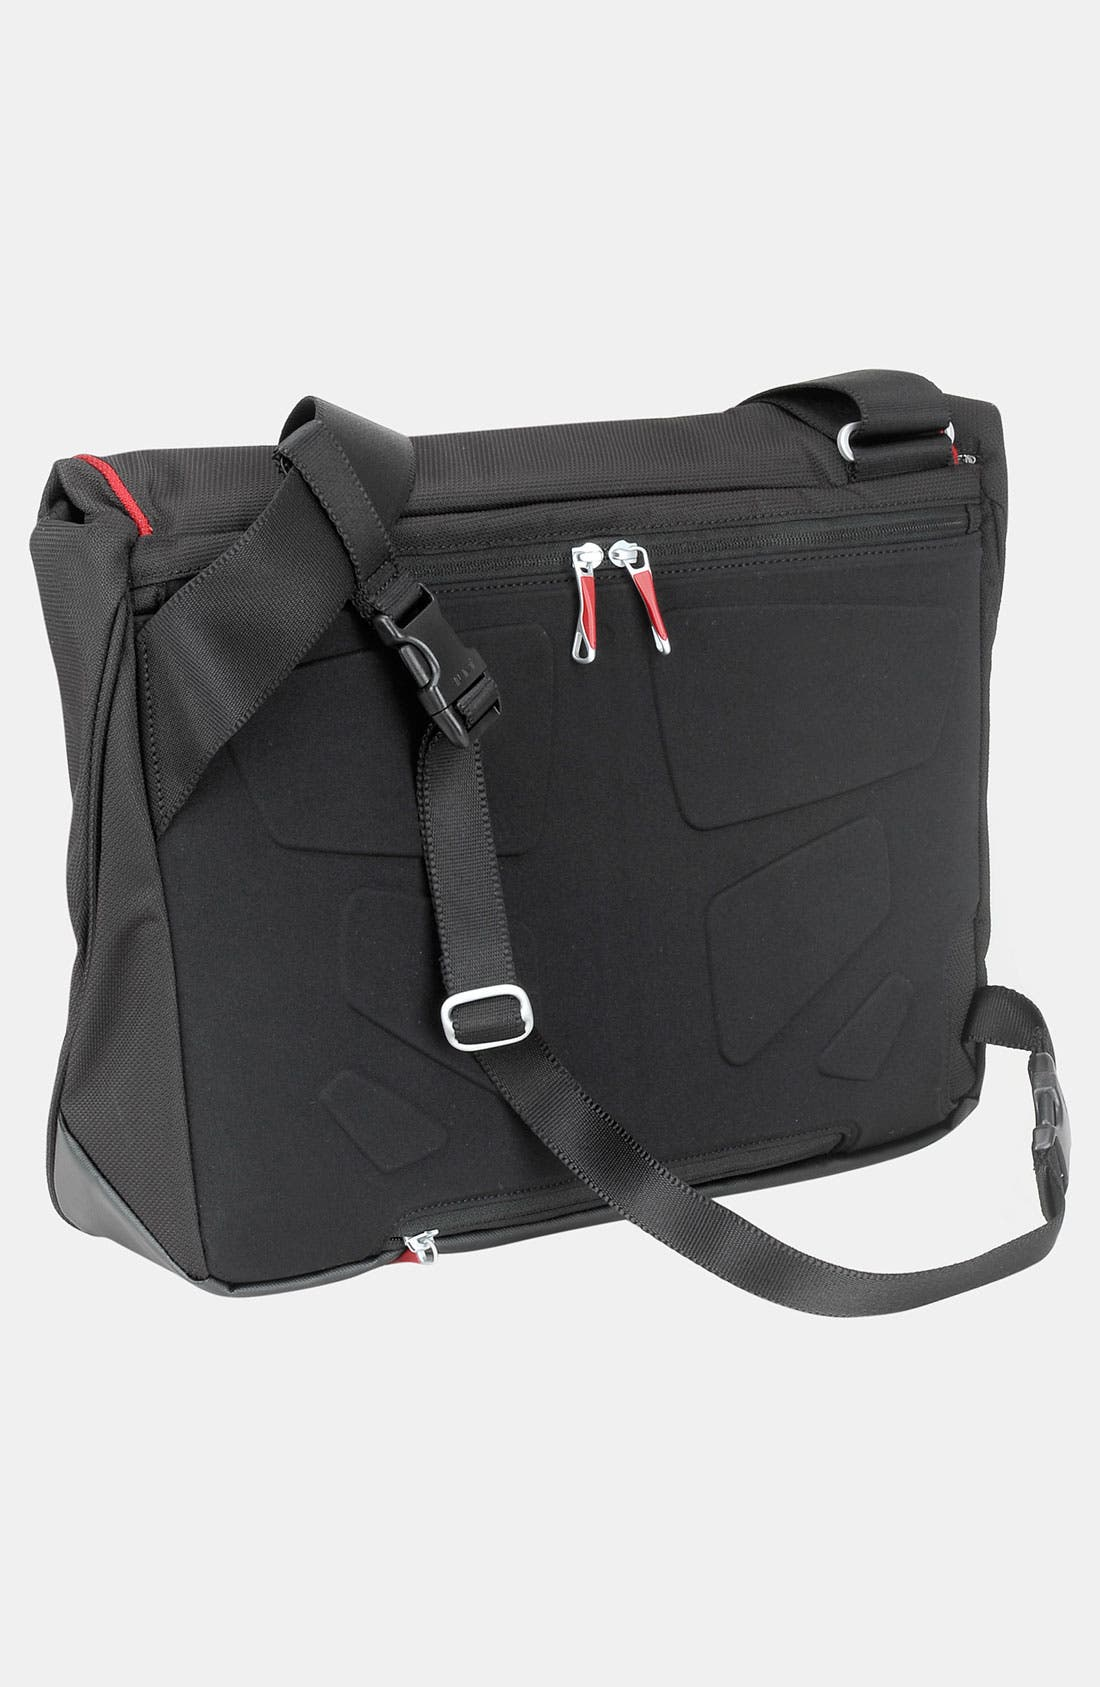 Alternate Image 2  - Tumi 'Ducati - Multistrada' Laptop Messenger Bag